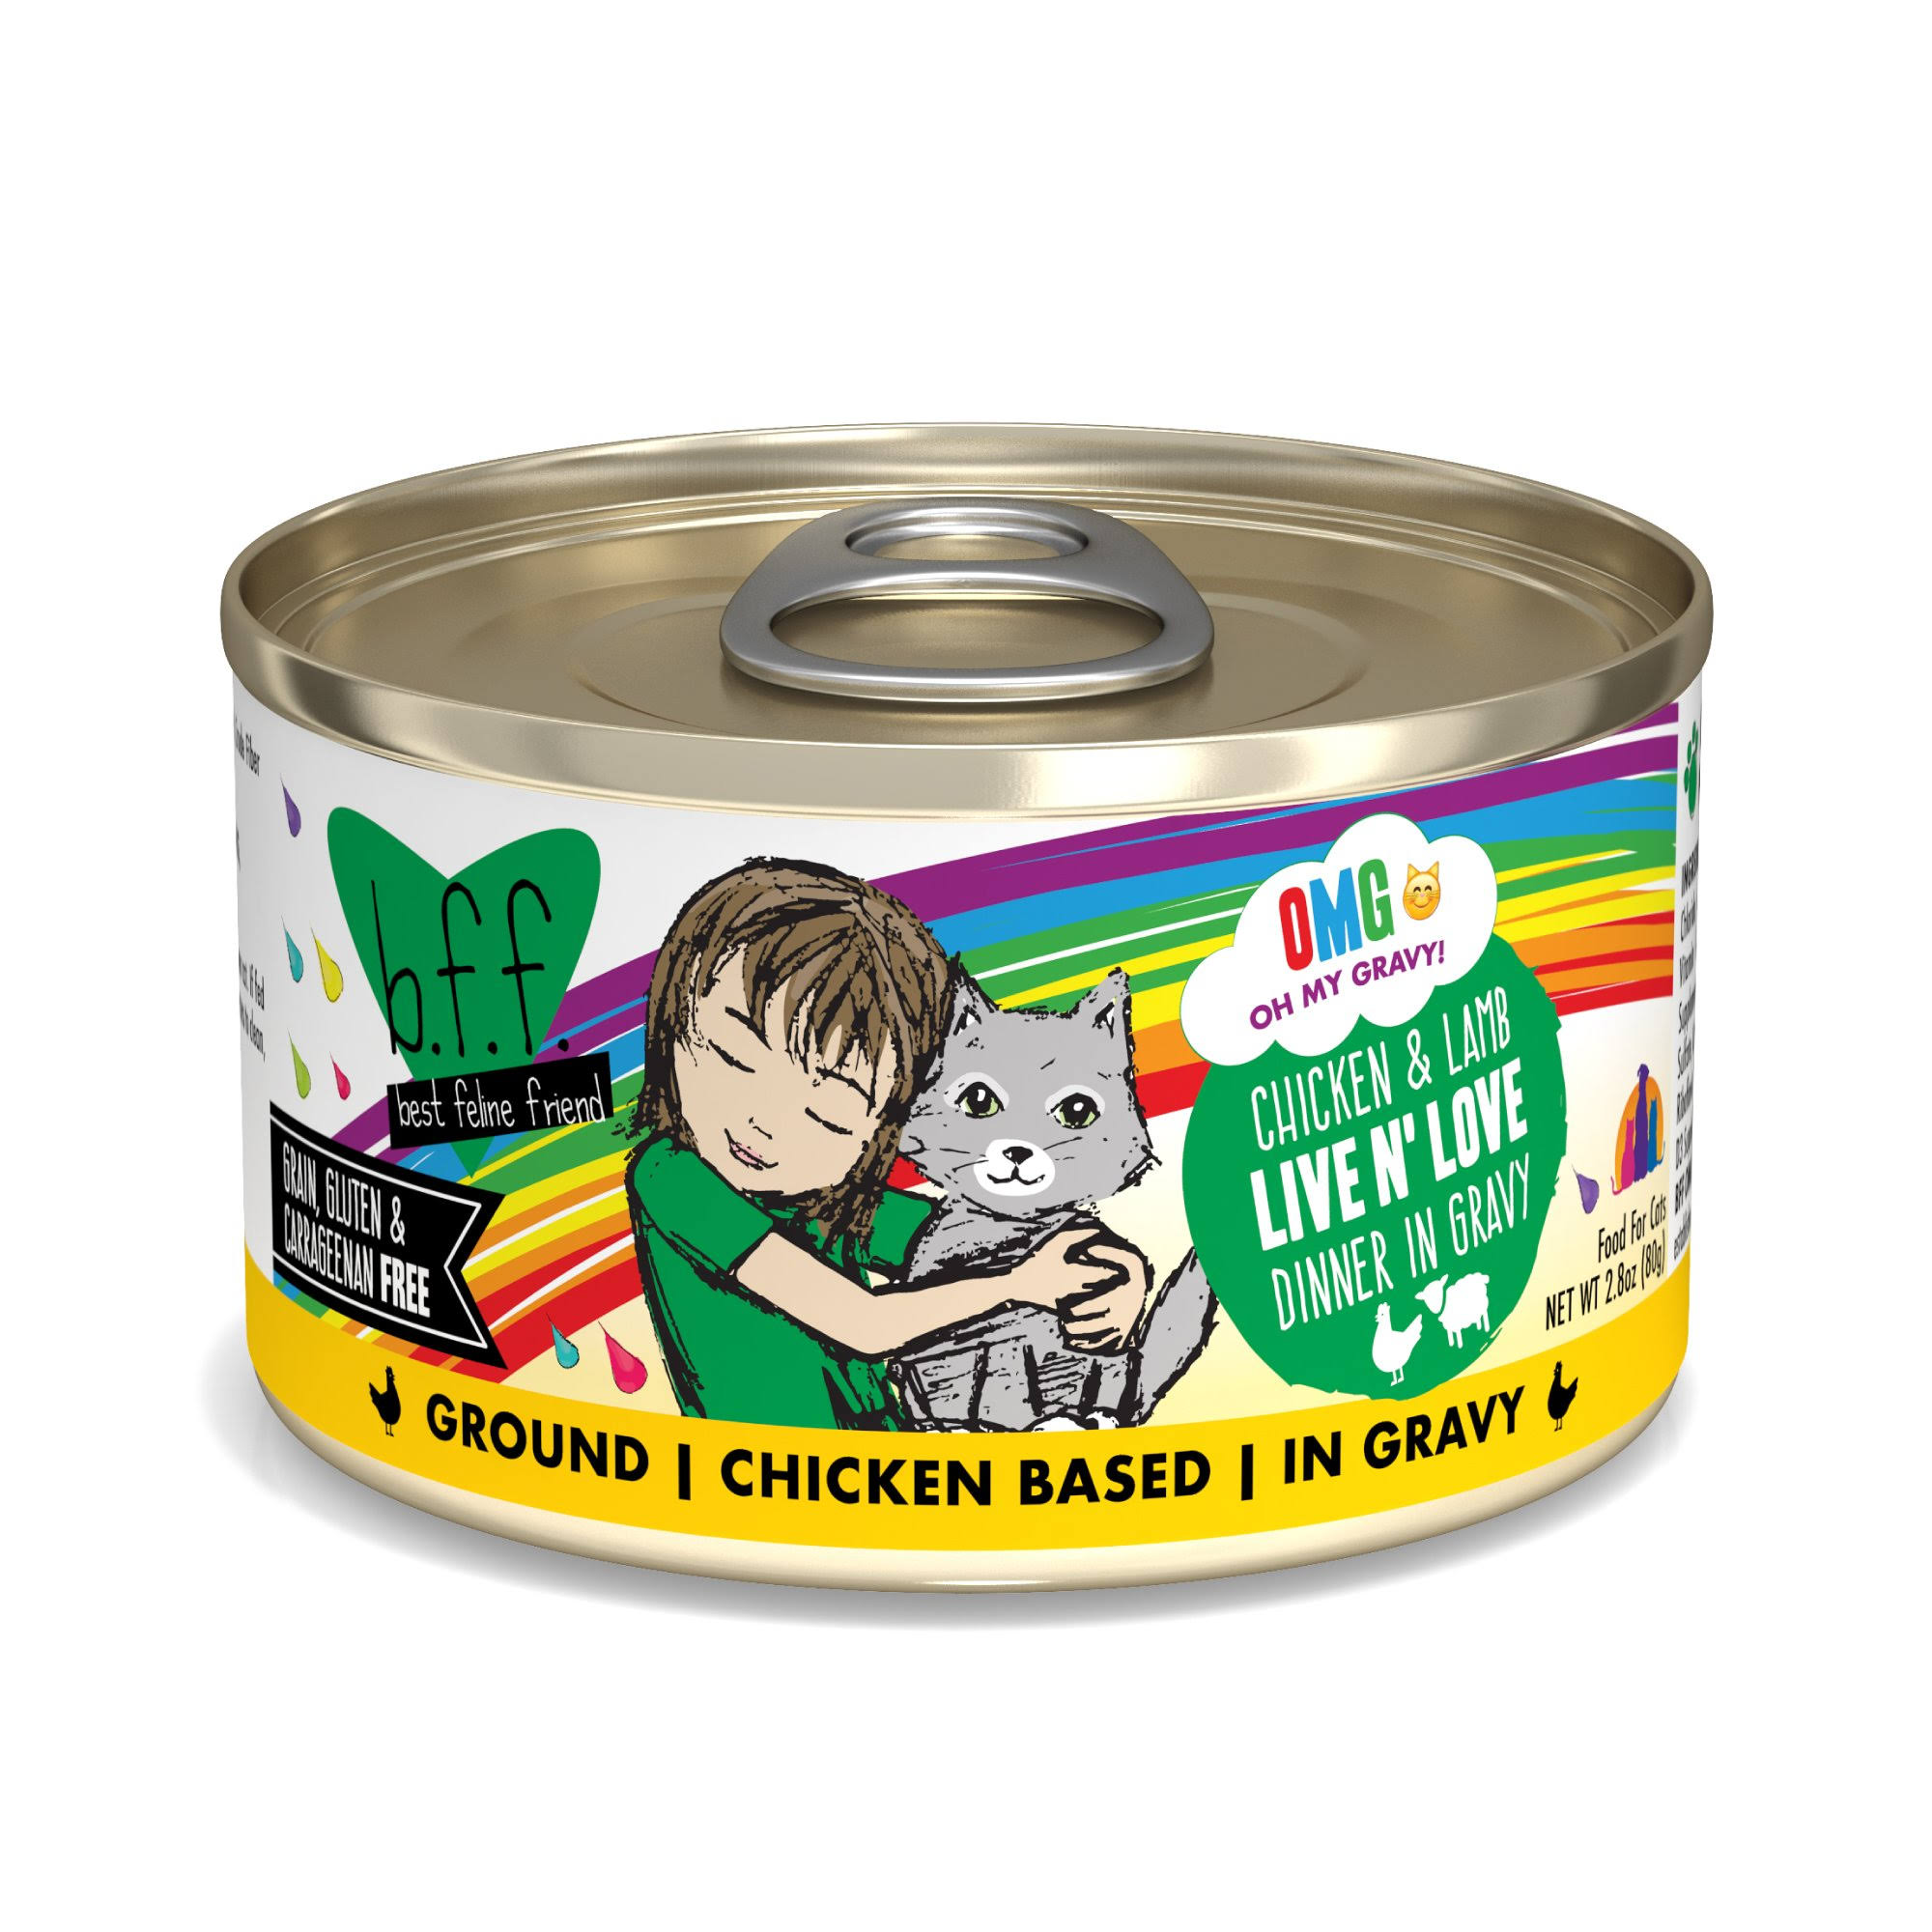 B.f.f. OMG Chicken & Lamb Live N' Love Dinner in Gravy OMG Food for Cats - 2.8 oz